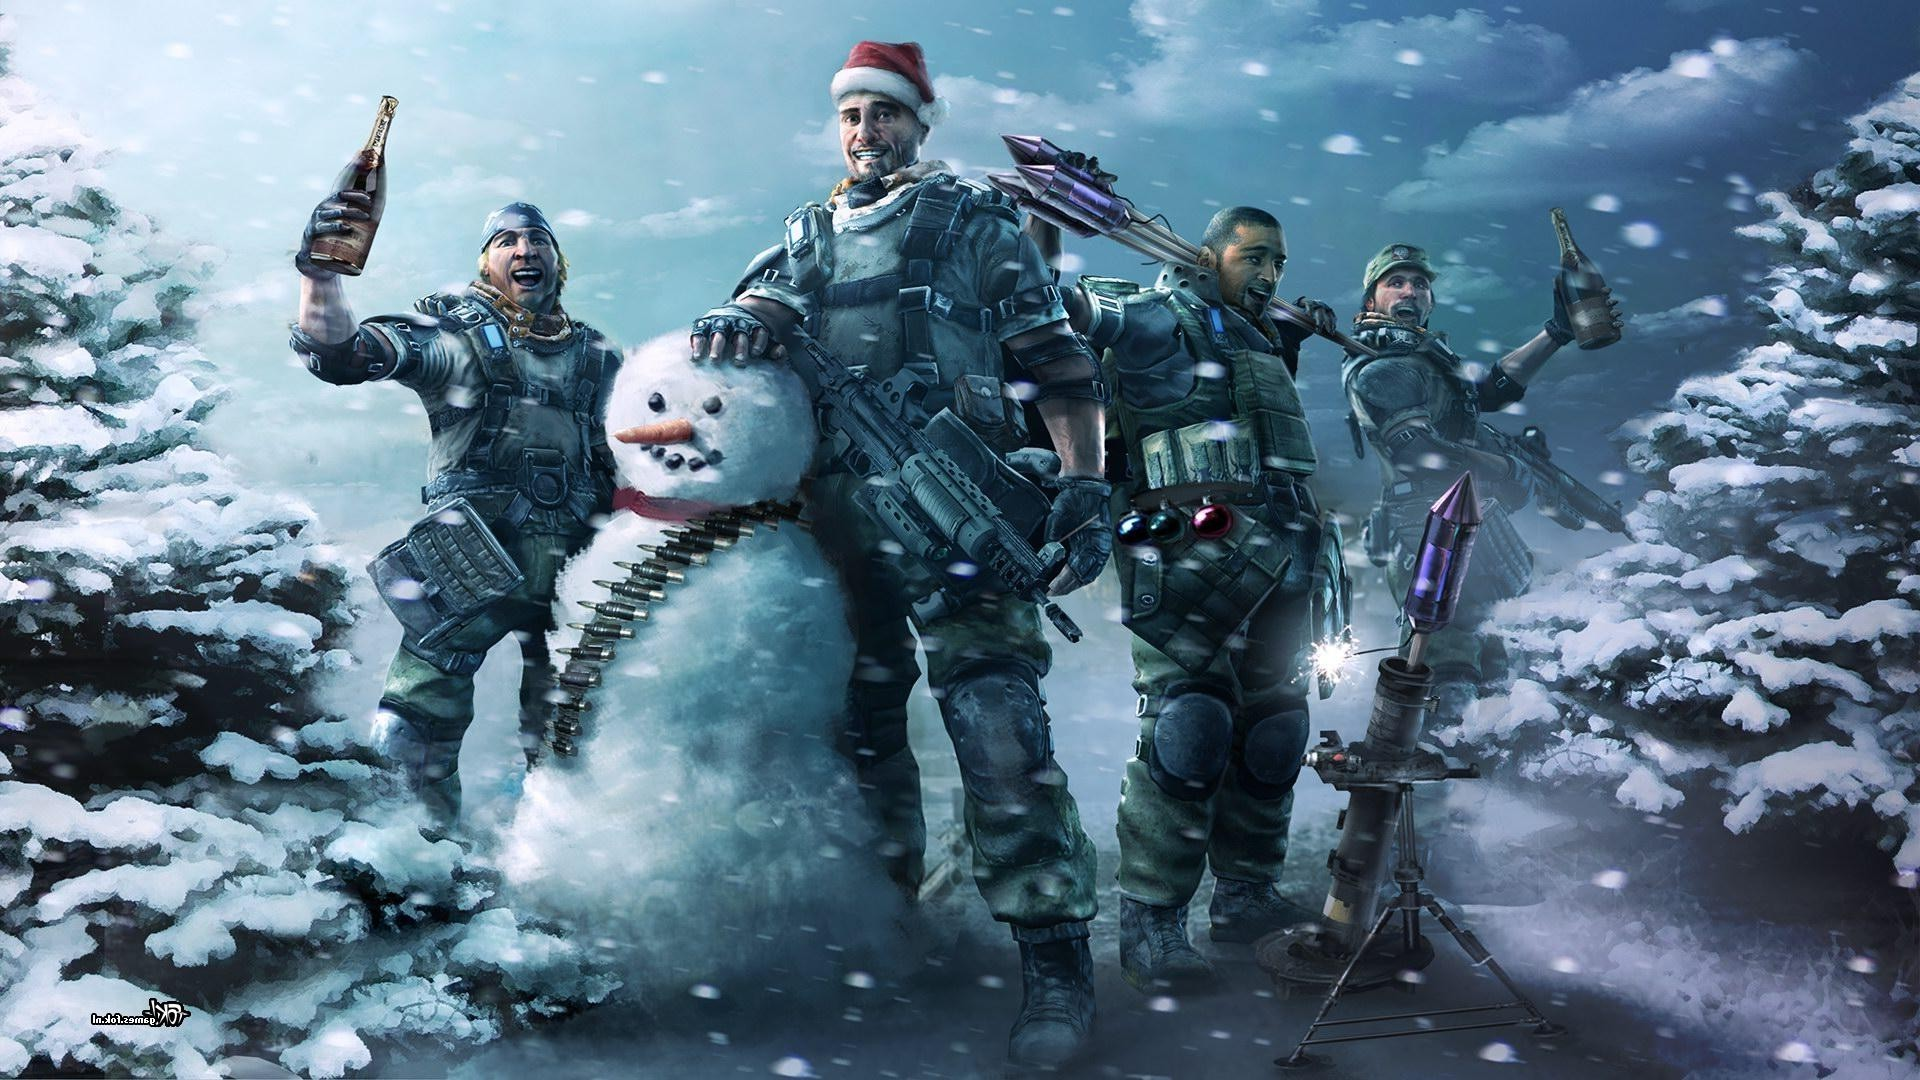 1920x1080 snowman, Snow, Christmas, Army Gear, Army, Wine, Gun, Winter, Ammunition,  Ammobelt, Killzone Wallpapers HD / Desktop and Mobile Backgrounds